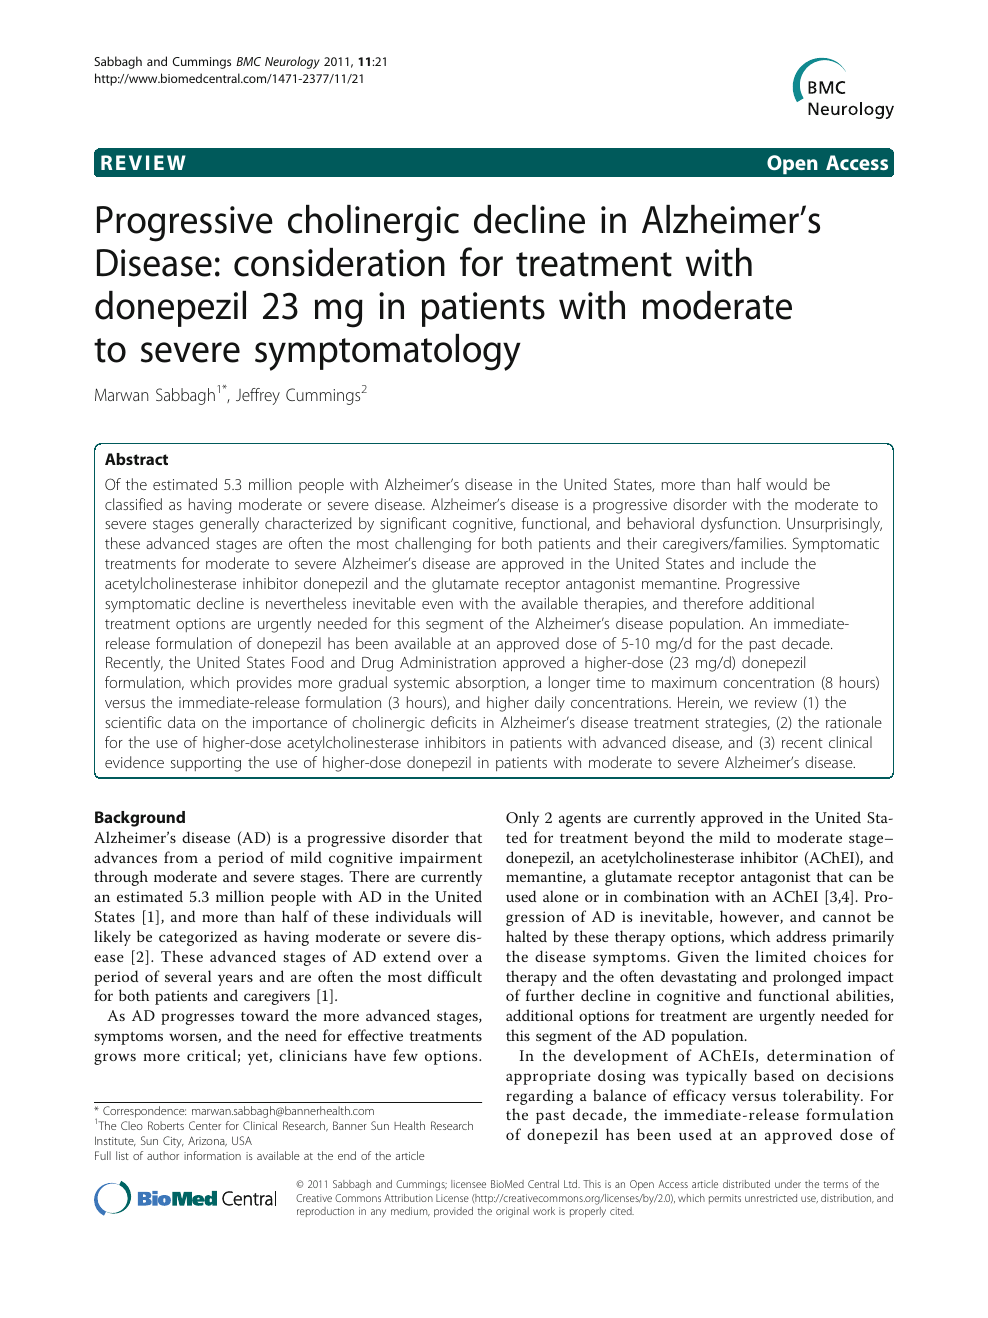 005 Alzheimers Disease Research Paper Topic Archaicawful Alzheimer's Ideas Topics Full